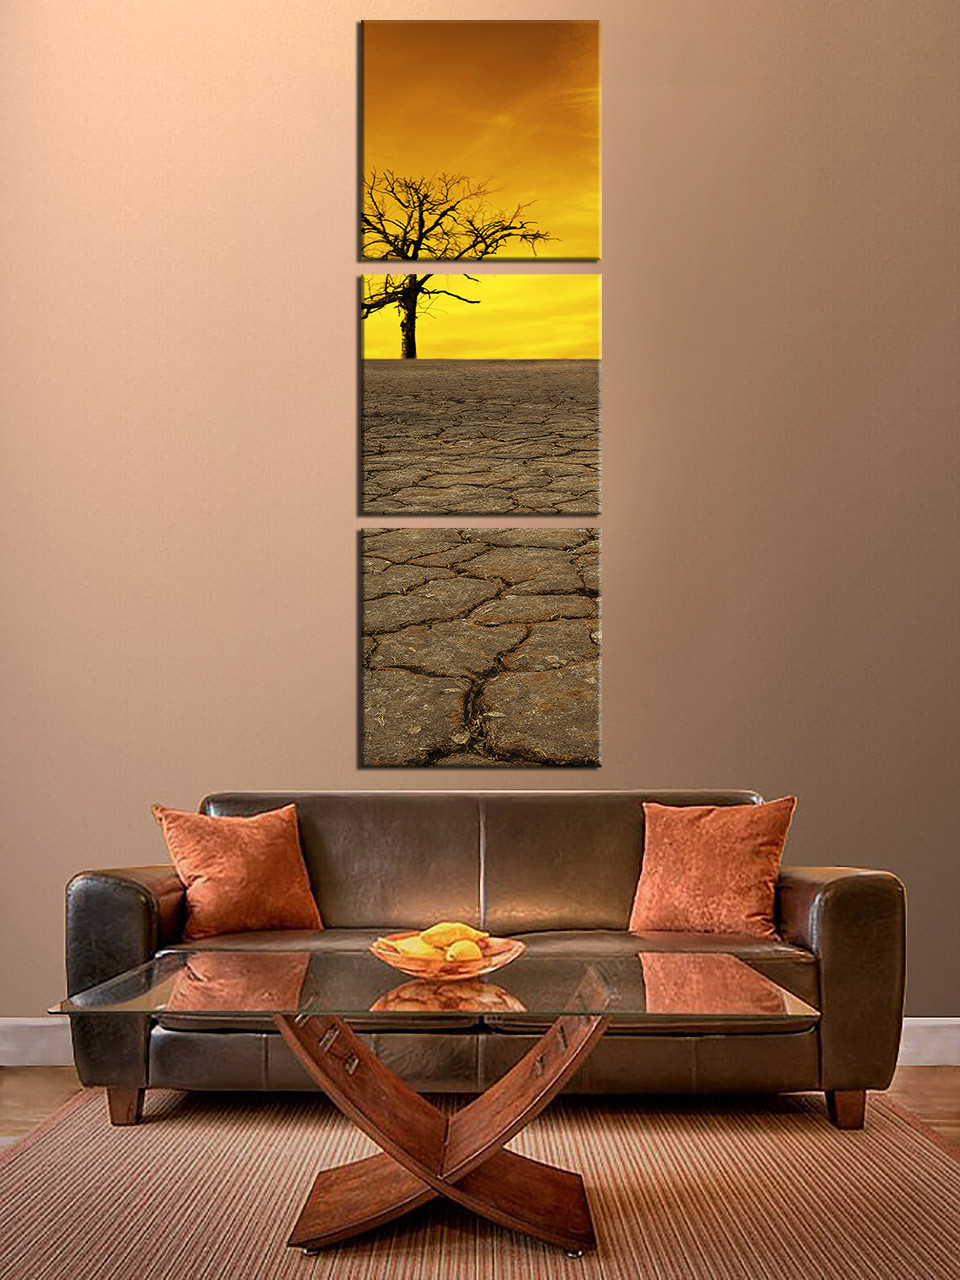 3 piece multi panel art yellow sky canvas photography scenery canvas wall decor nature photo. Black Bedroom Furniture Sets. Home Design Ideas